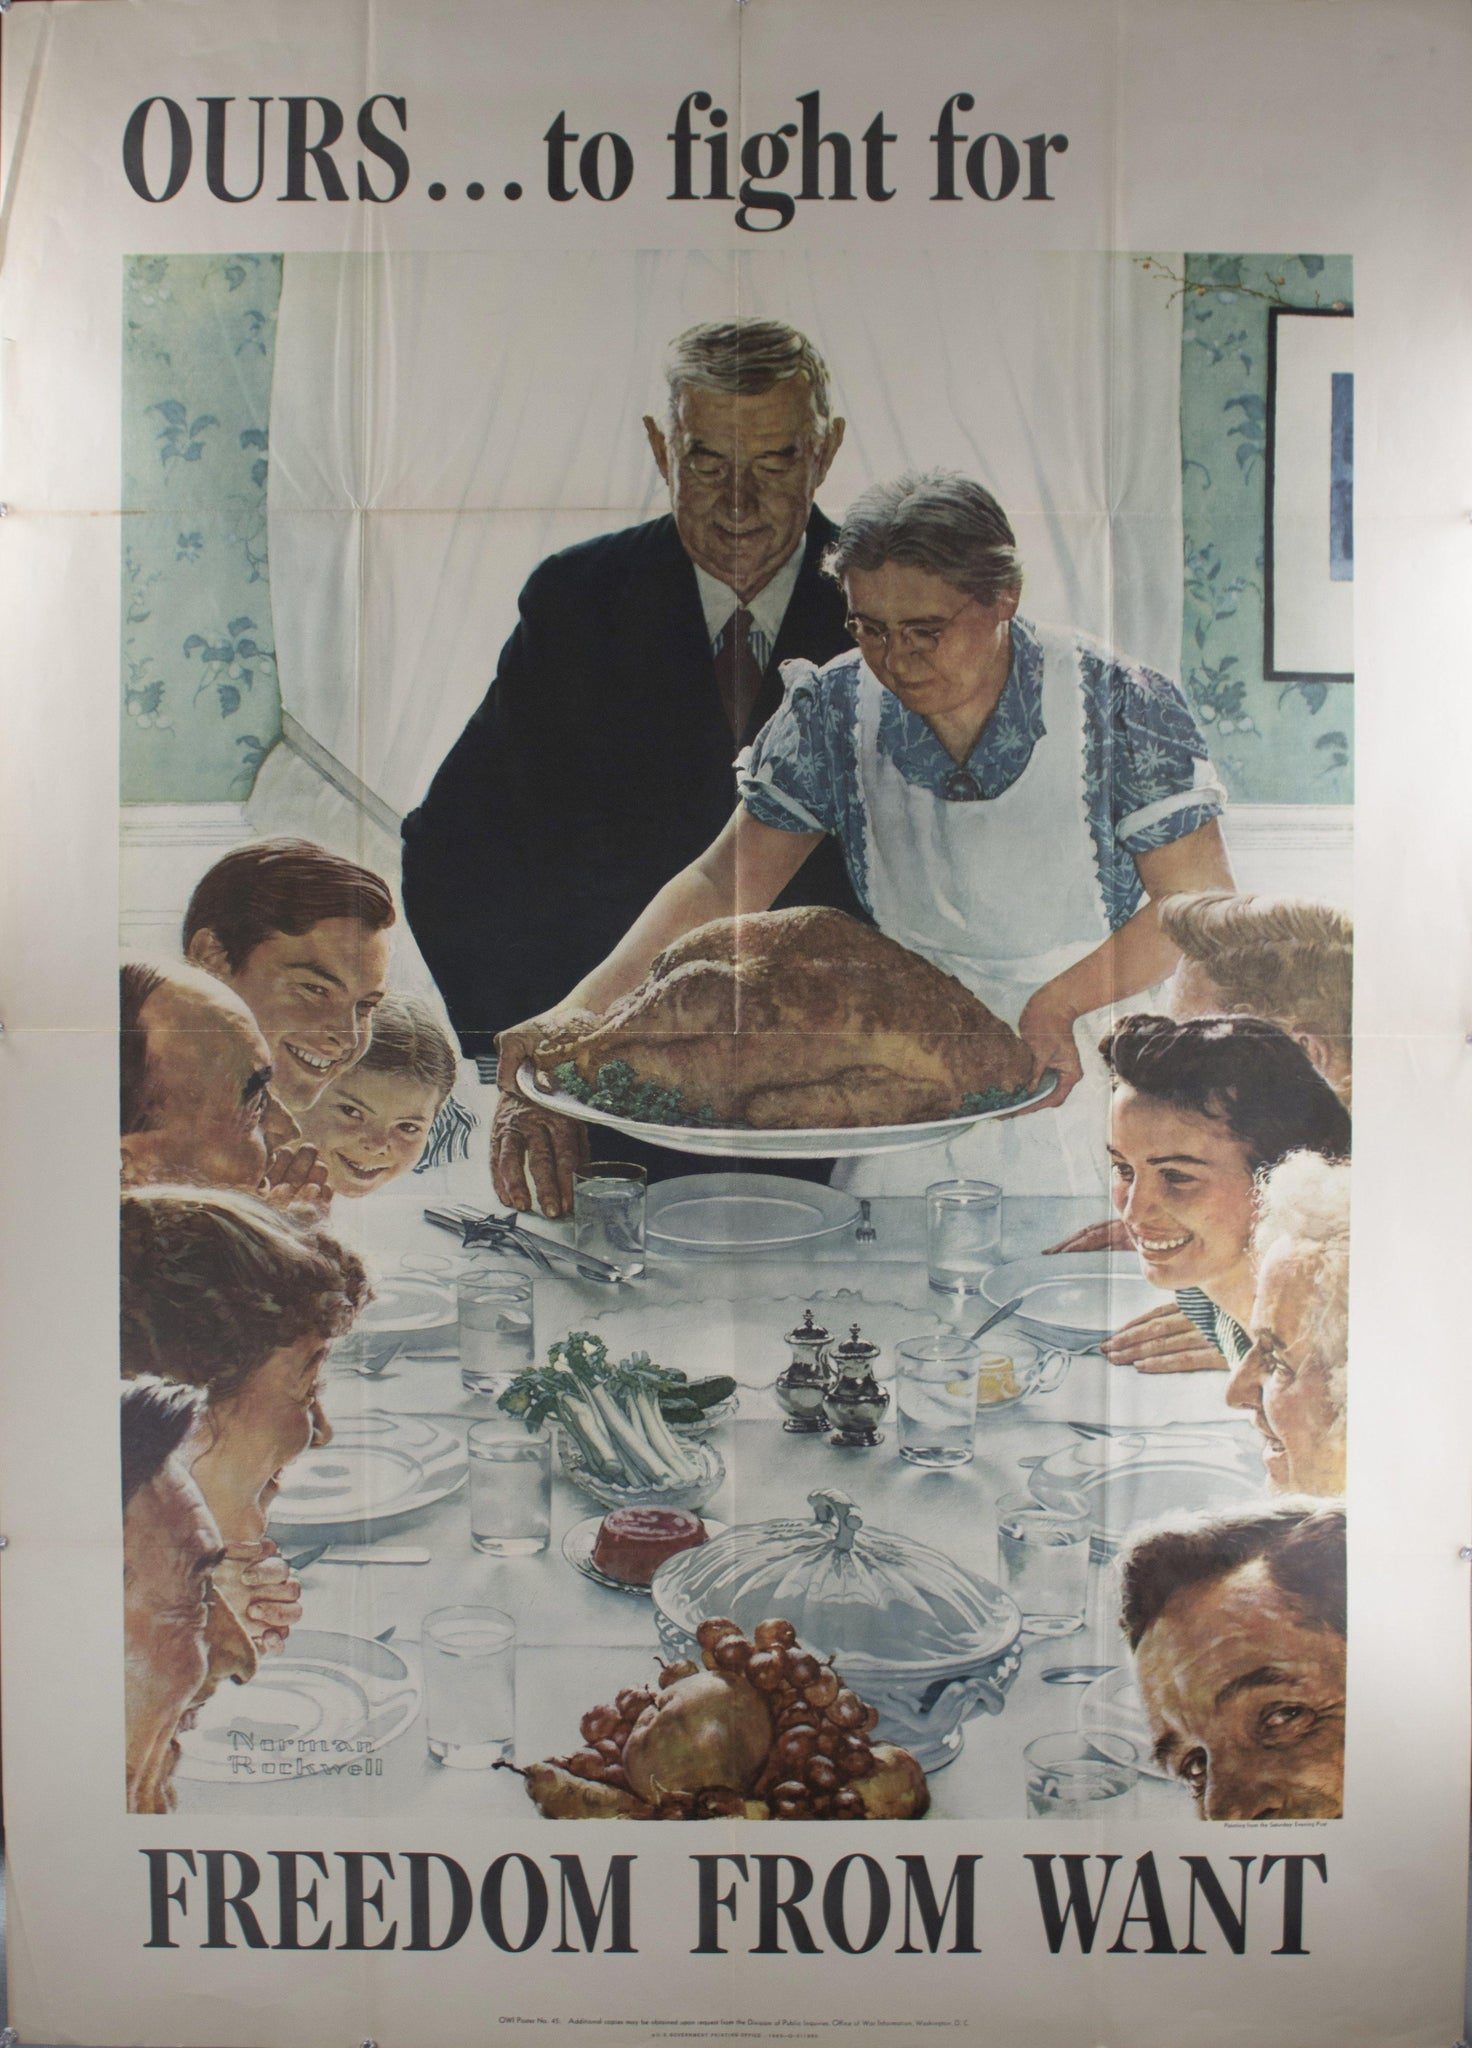 "1942 Ours to fight for Freedom from Want by Norman Rockwell 57"" x 40"""